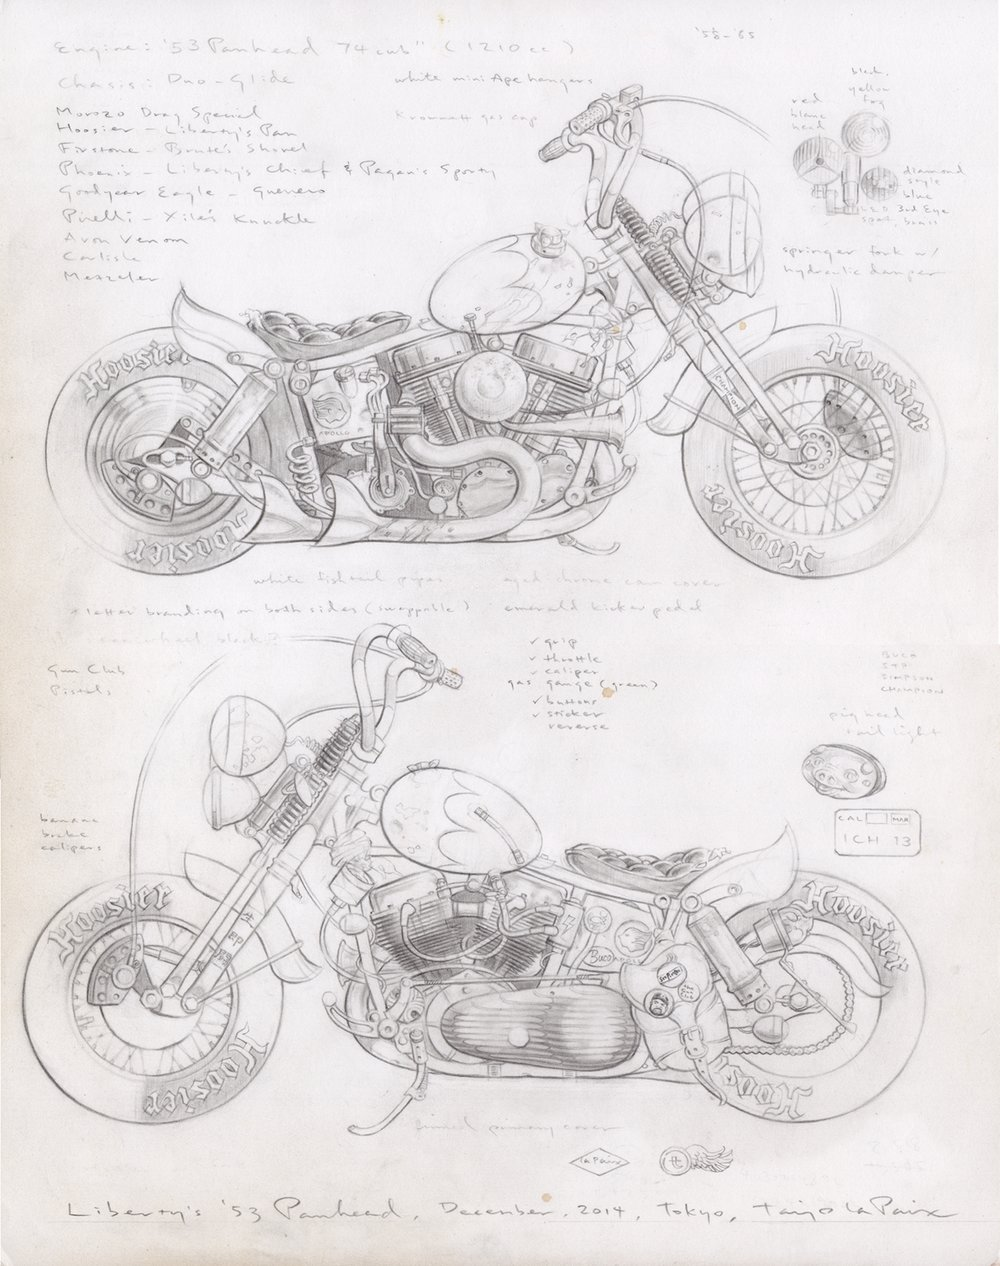 Liberty's '53 Panhead, 2014, pencil on paper, 14 x 11 inches